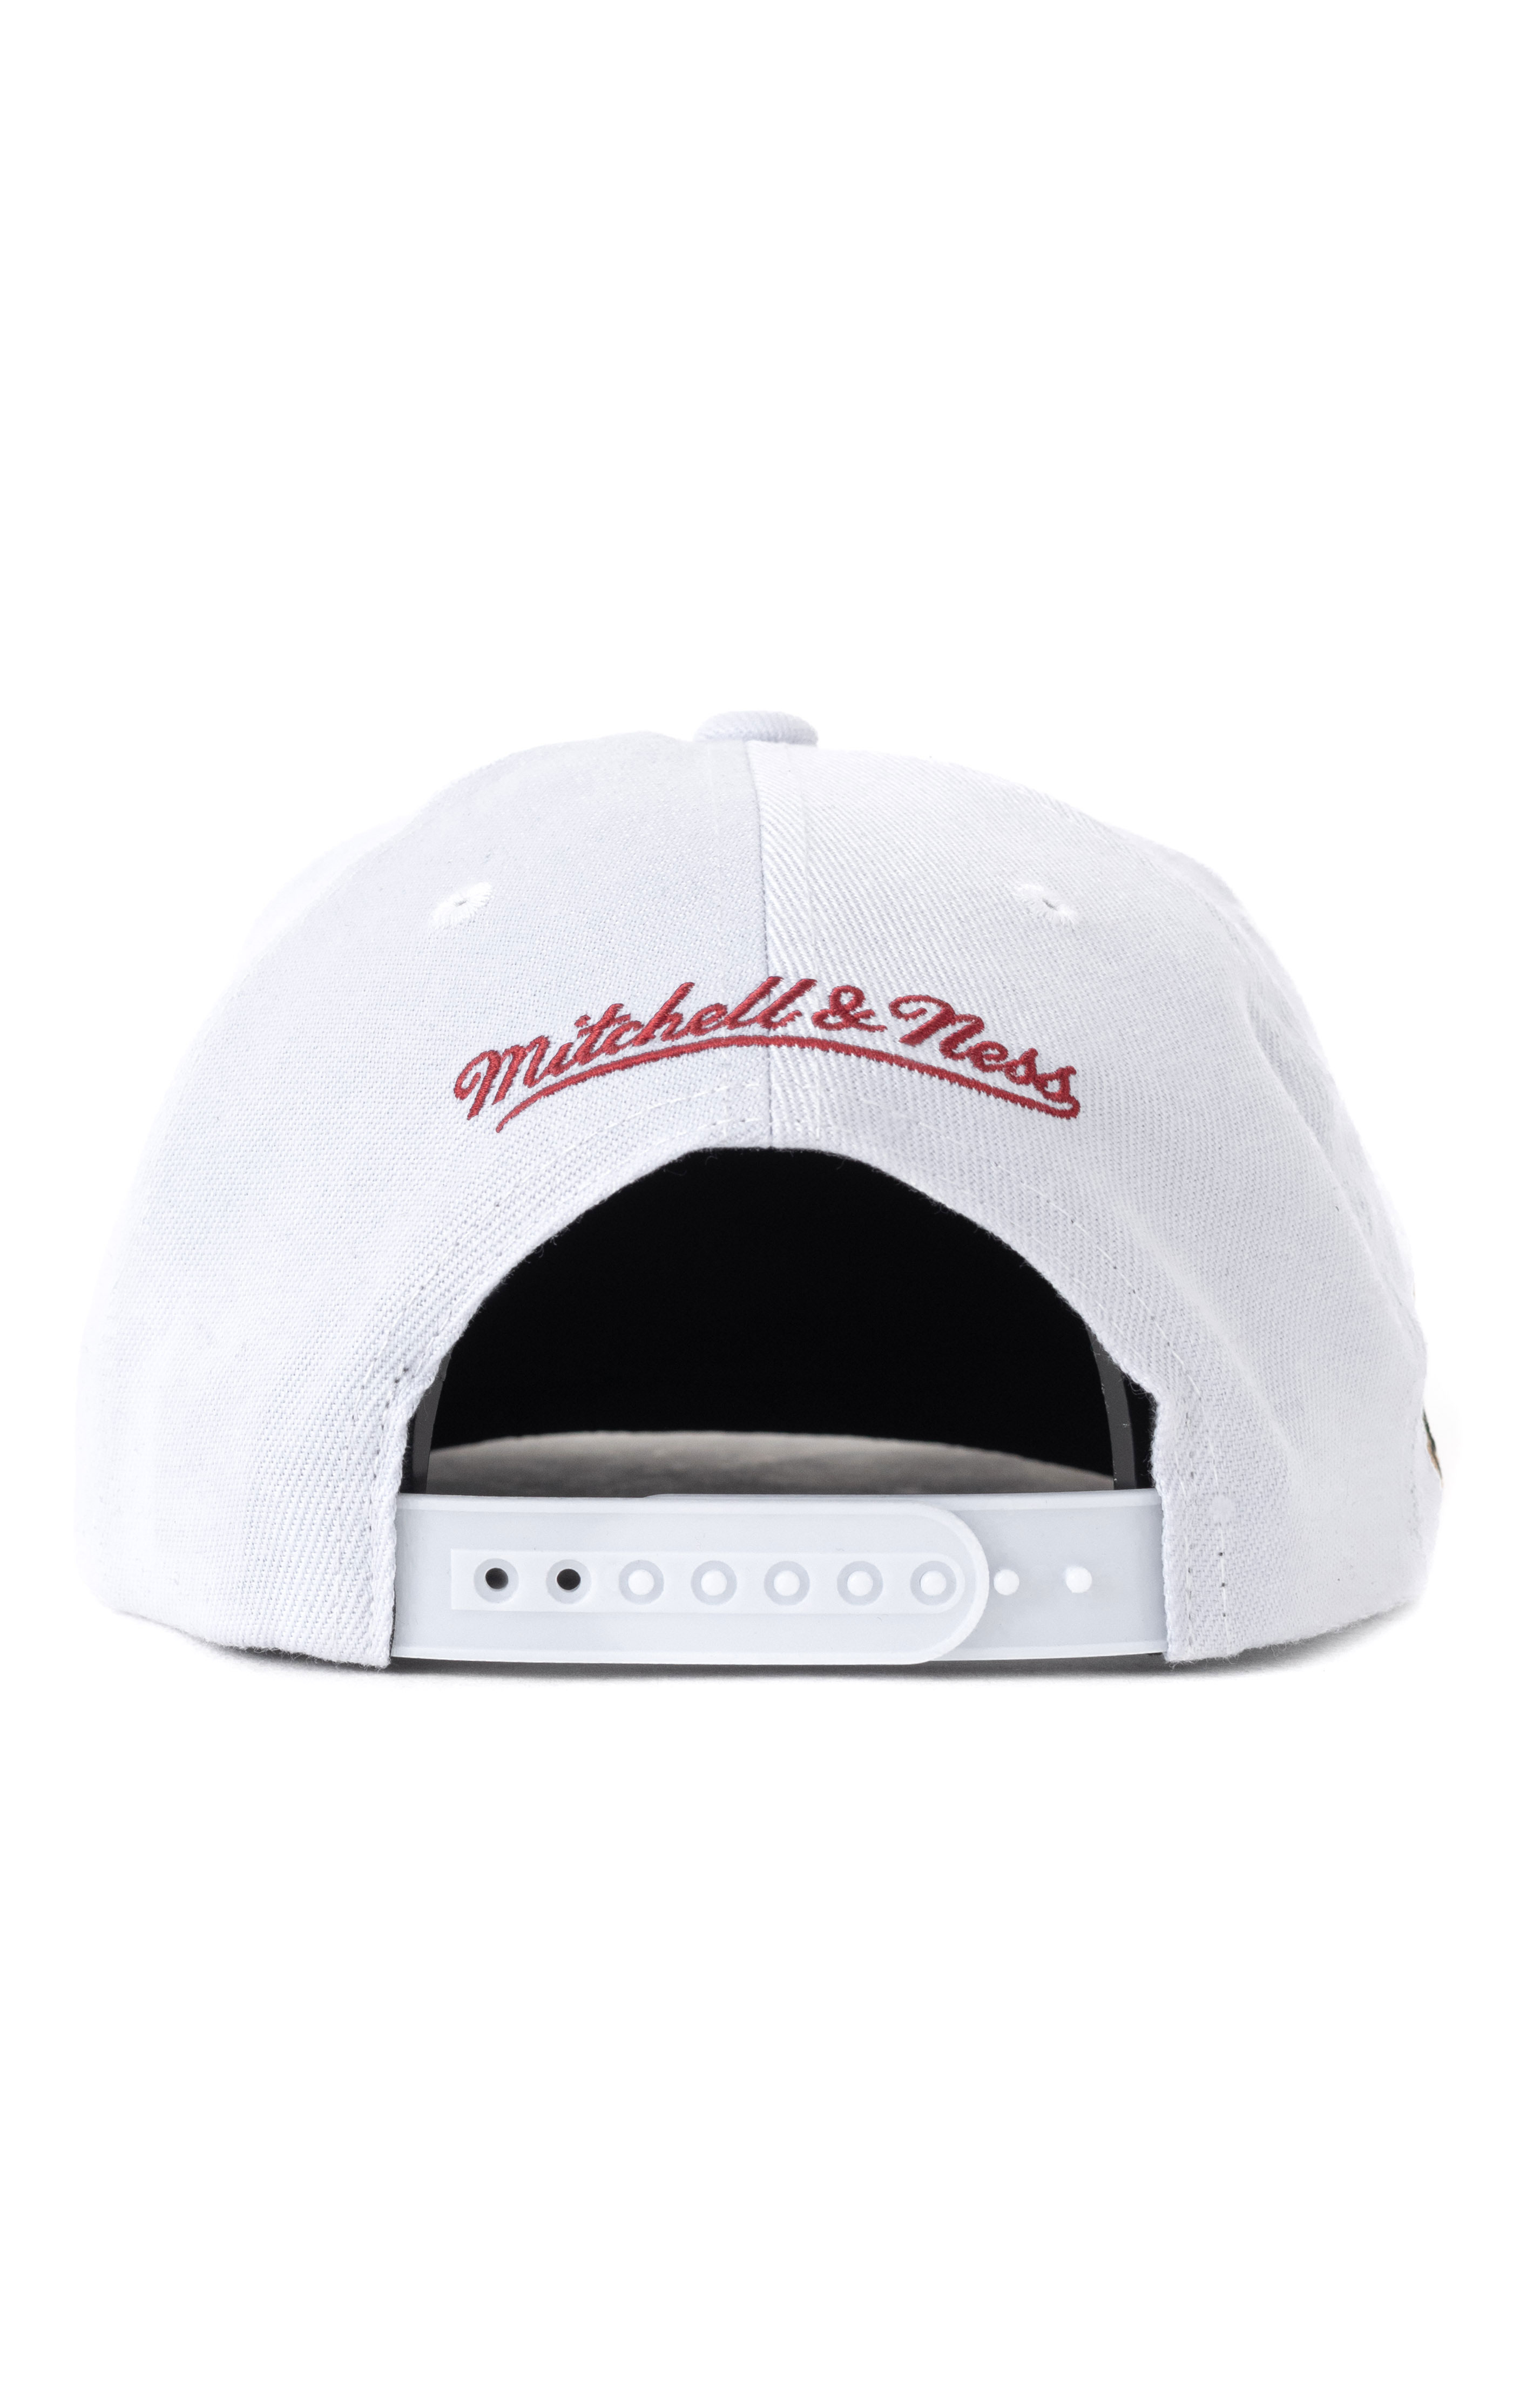 NBA Finals Patch Snap-Back Hat HWC Bulls 1998 - White/Red 4